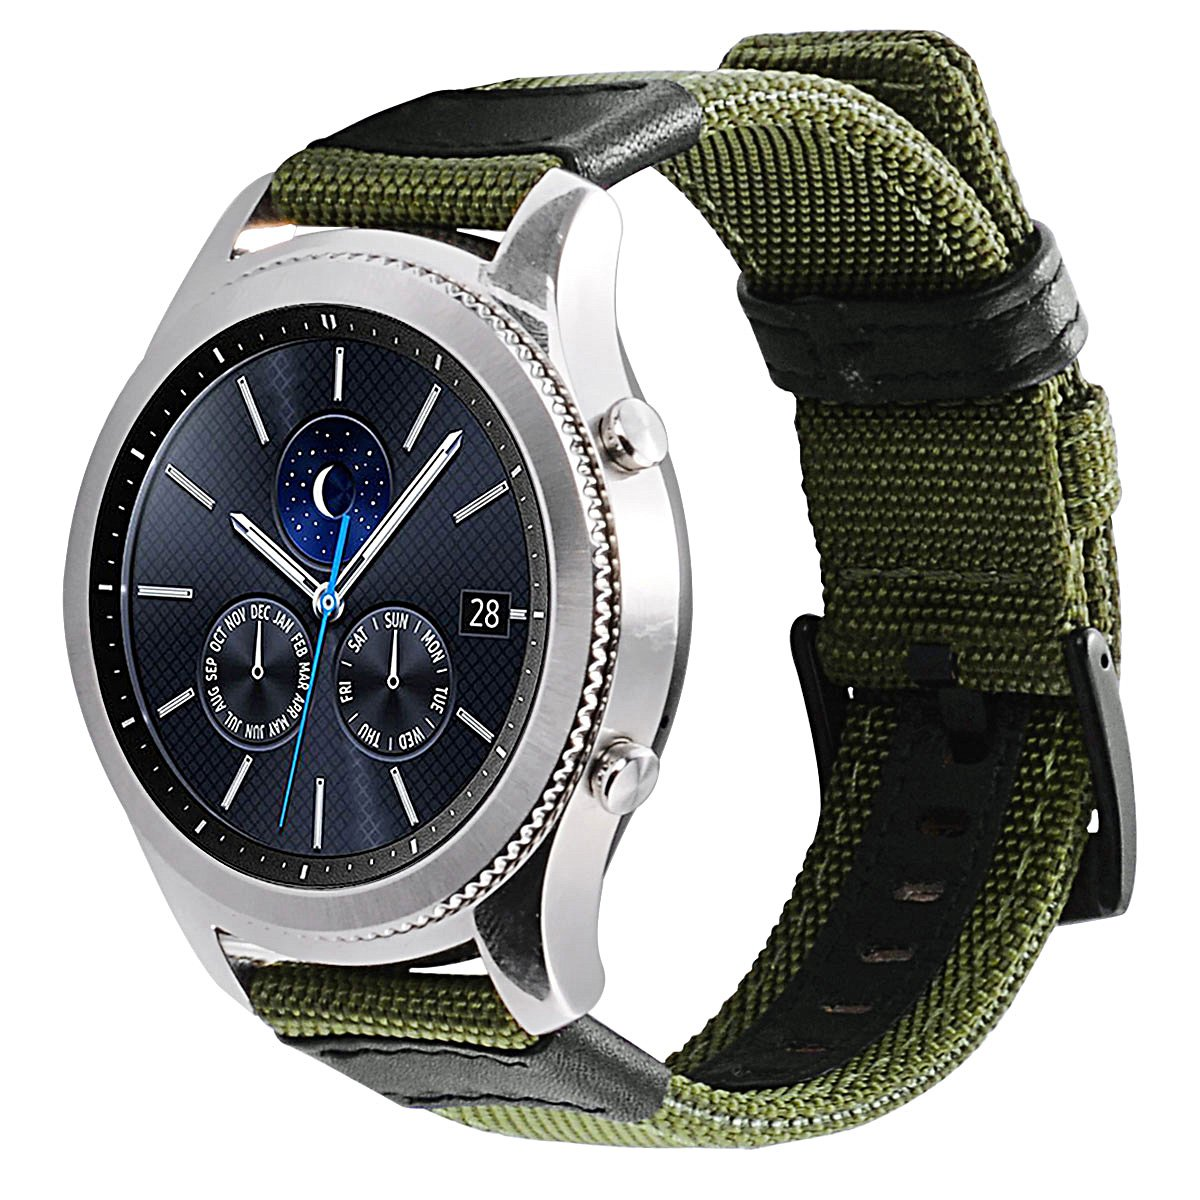 Gear S3 Bands Nylon, Maxjoy S3 Frontier Classic Band 22 mm Woven Nylon Replacement Strap Large Sport Wristband Bracelet with Stainless Steel Metal Buckle for Samsung Gear S3 Smart Watch, Army Green by Maxjoy (Image #9)